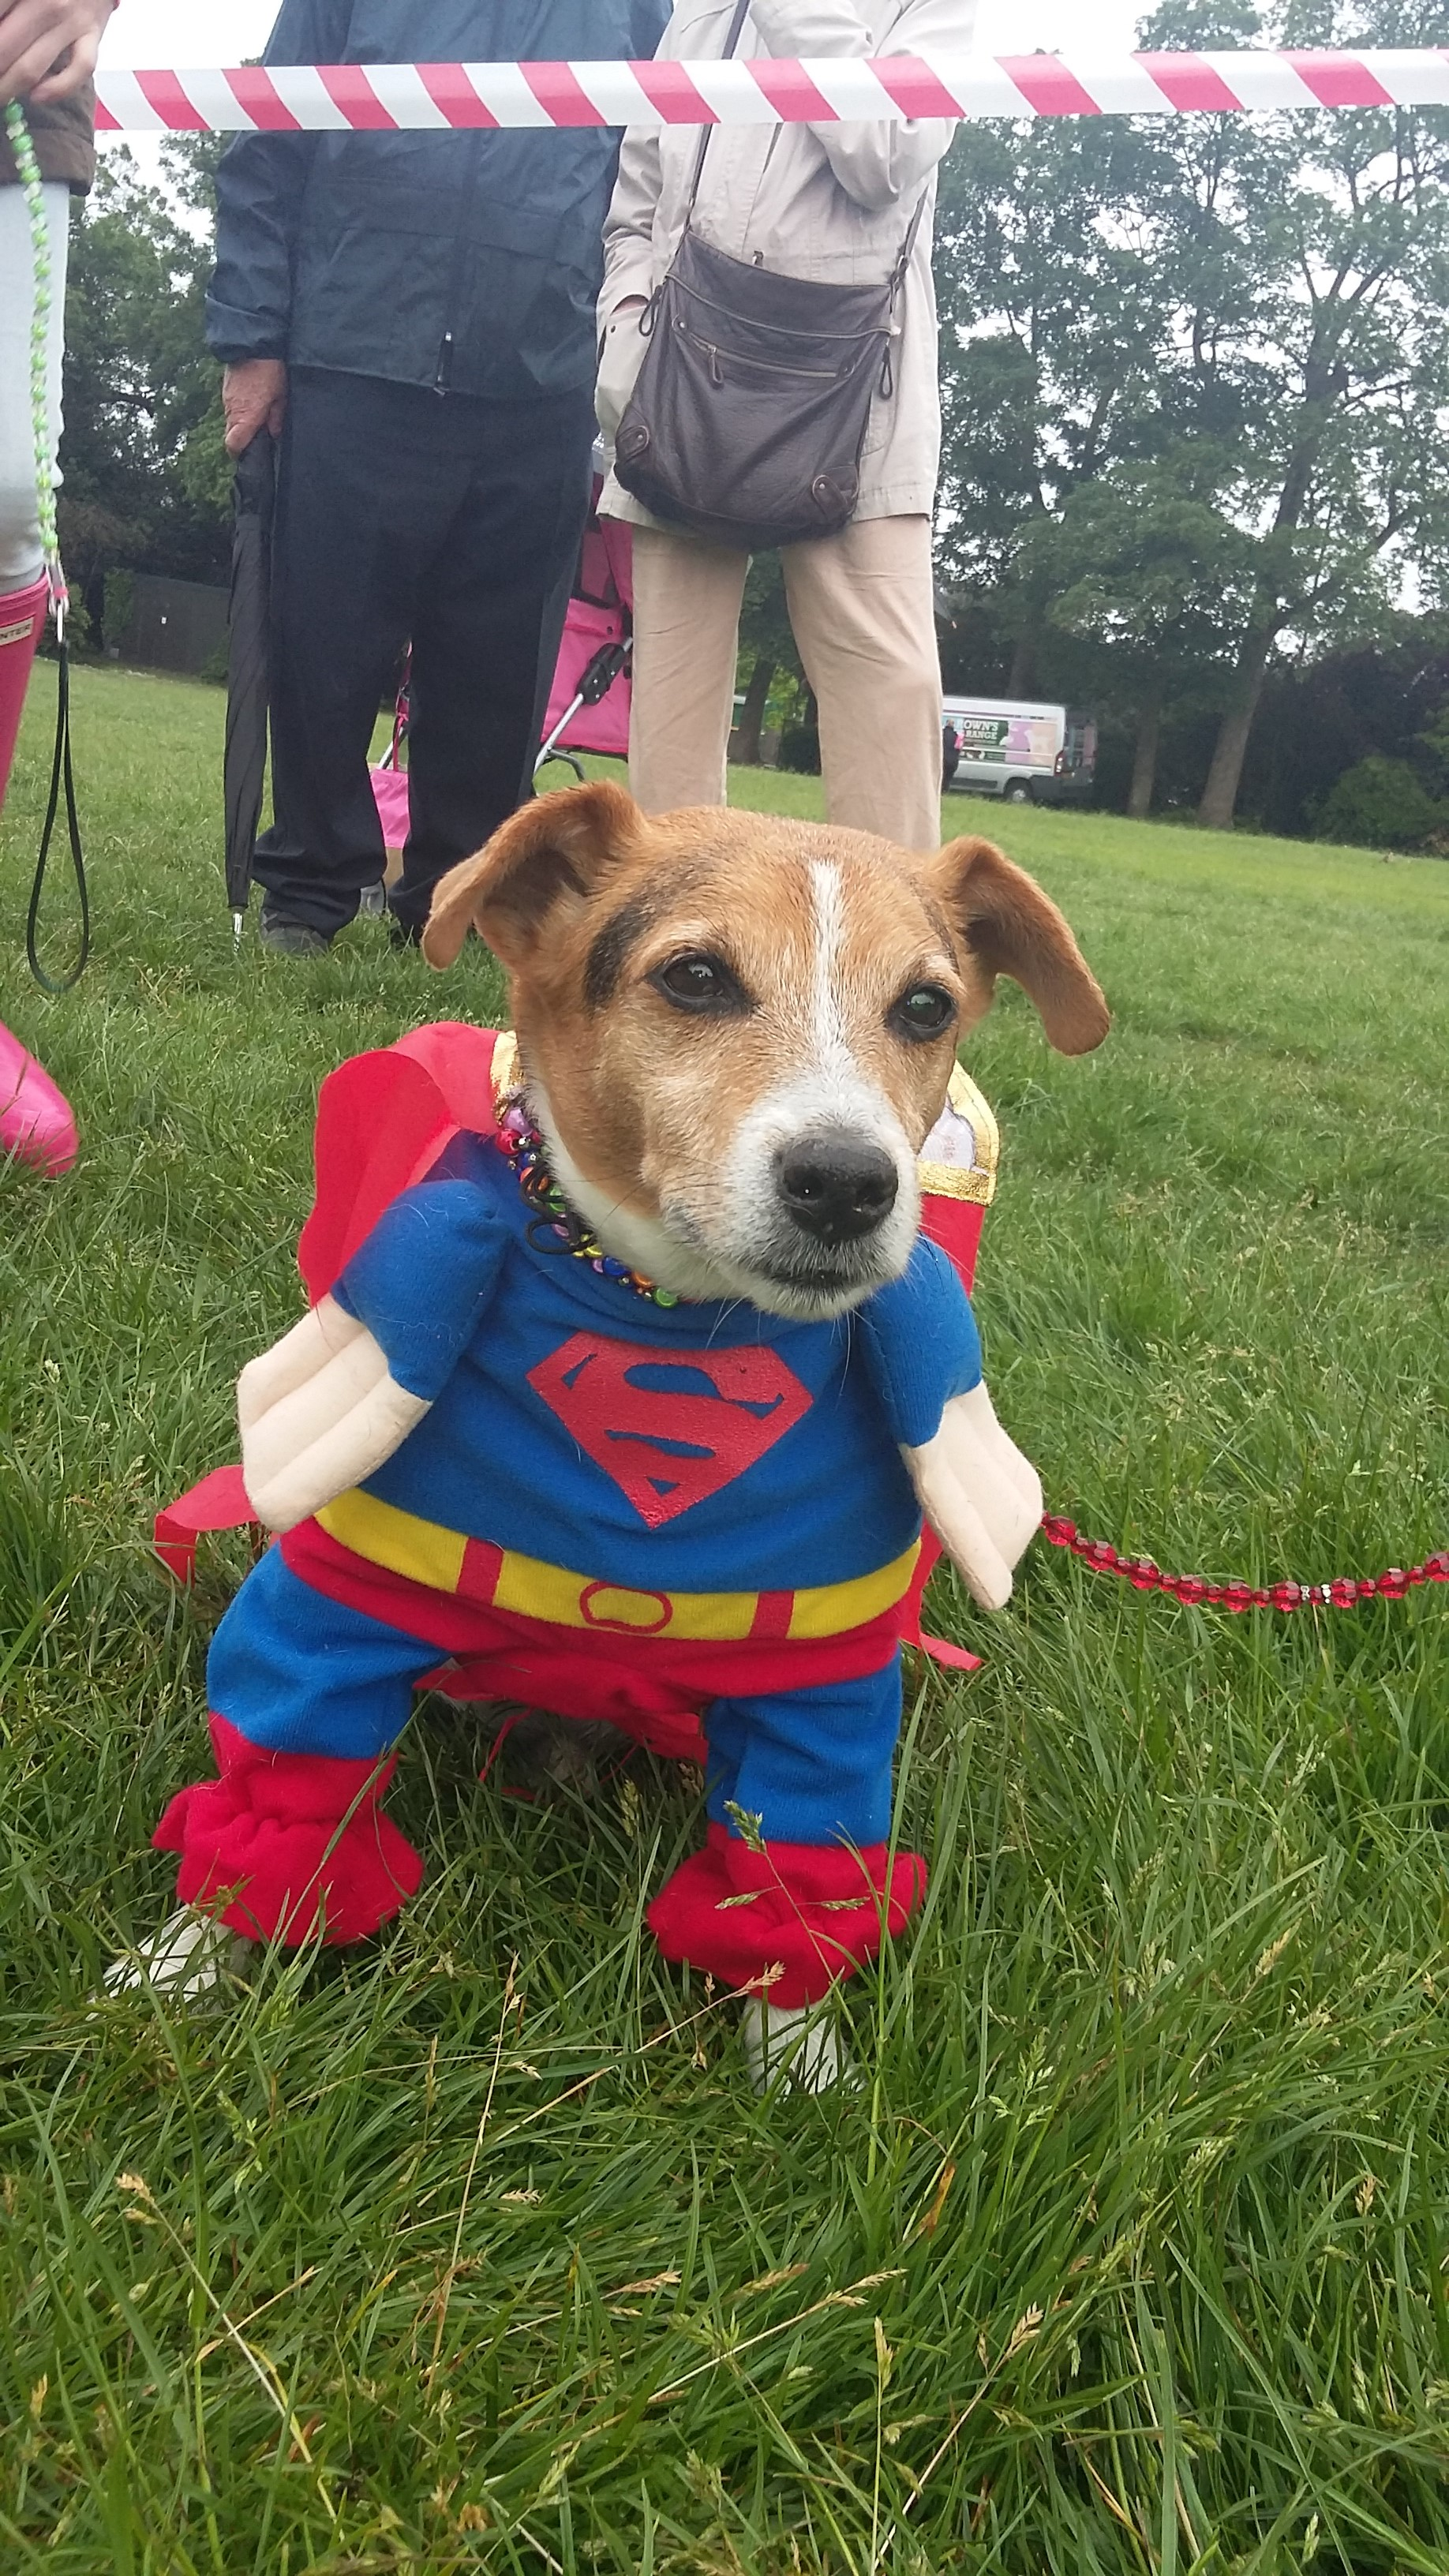 Paws in The Park Fun Dog Show in support of Southend Hospital Charitable Foundation